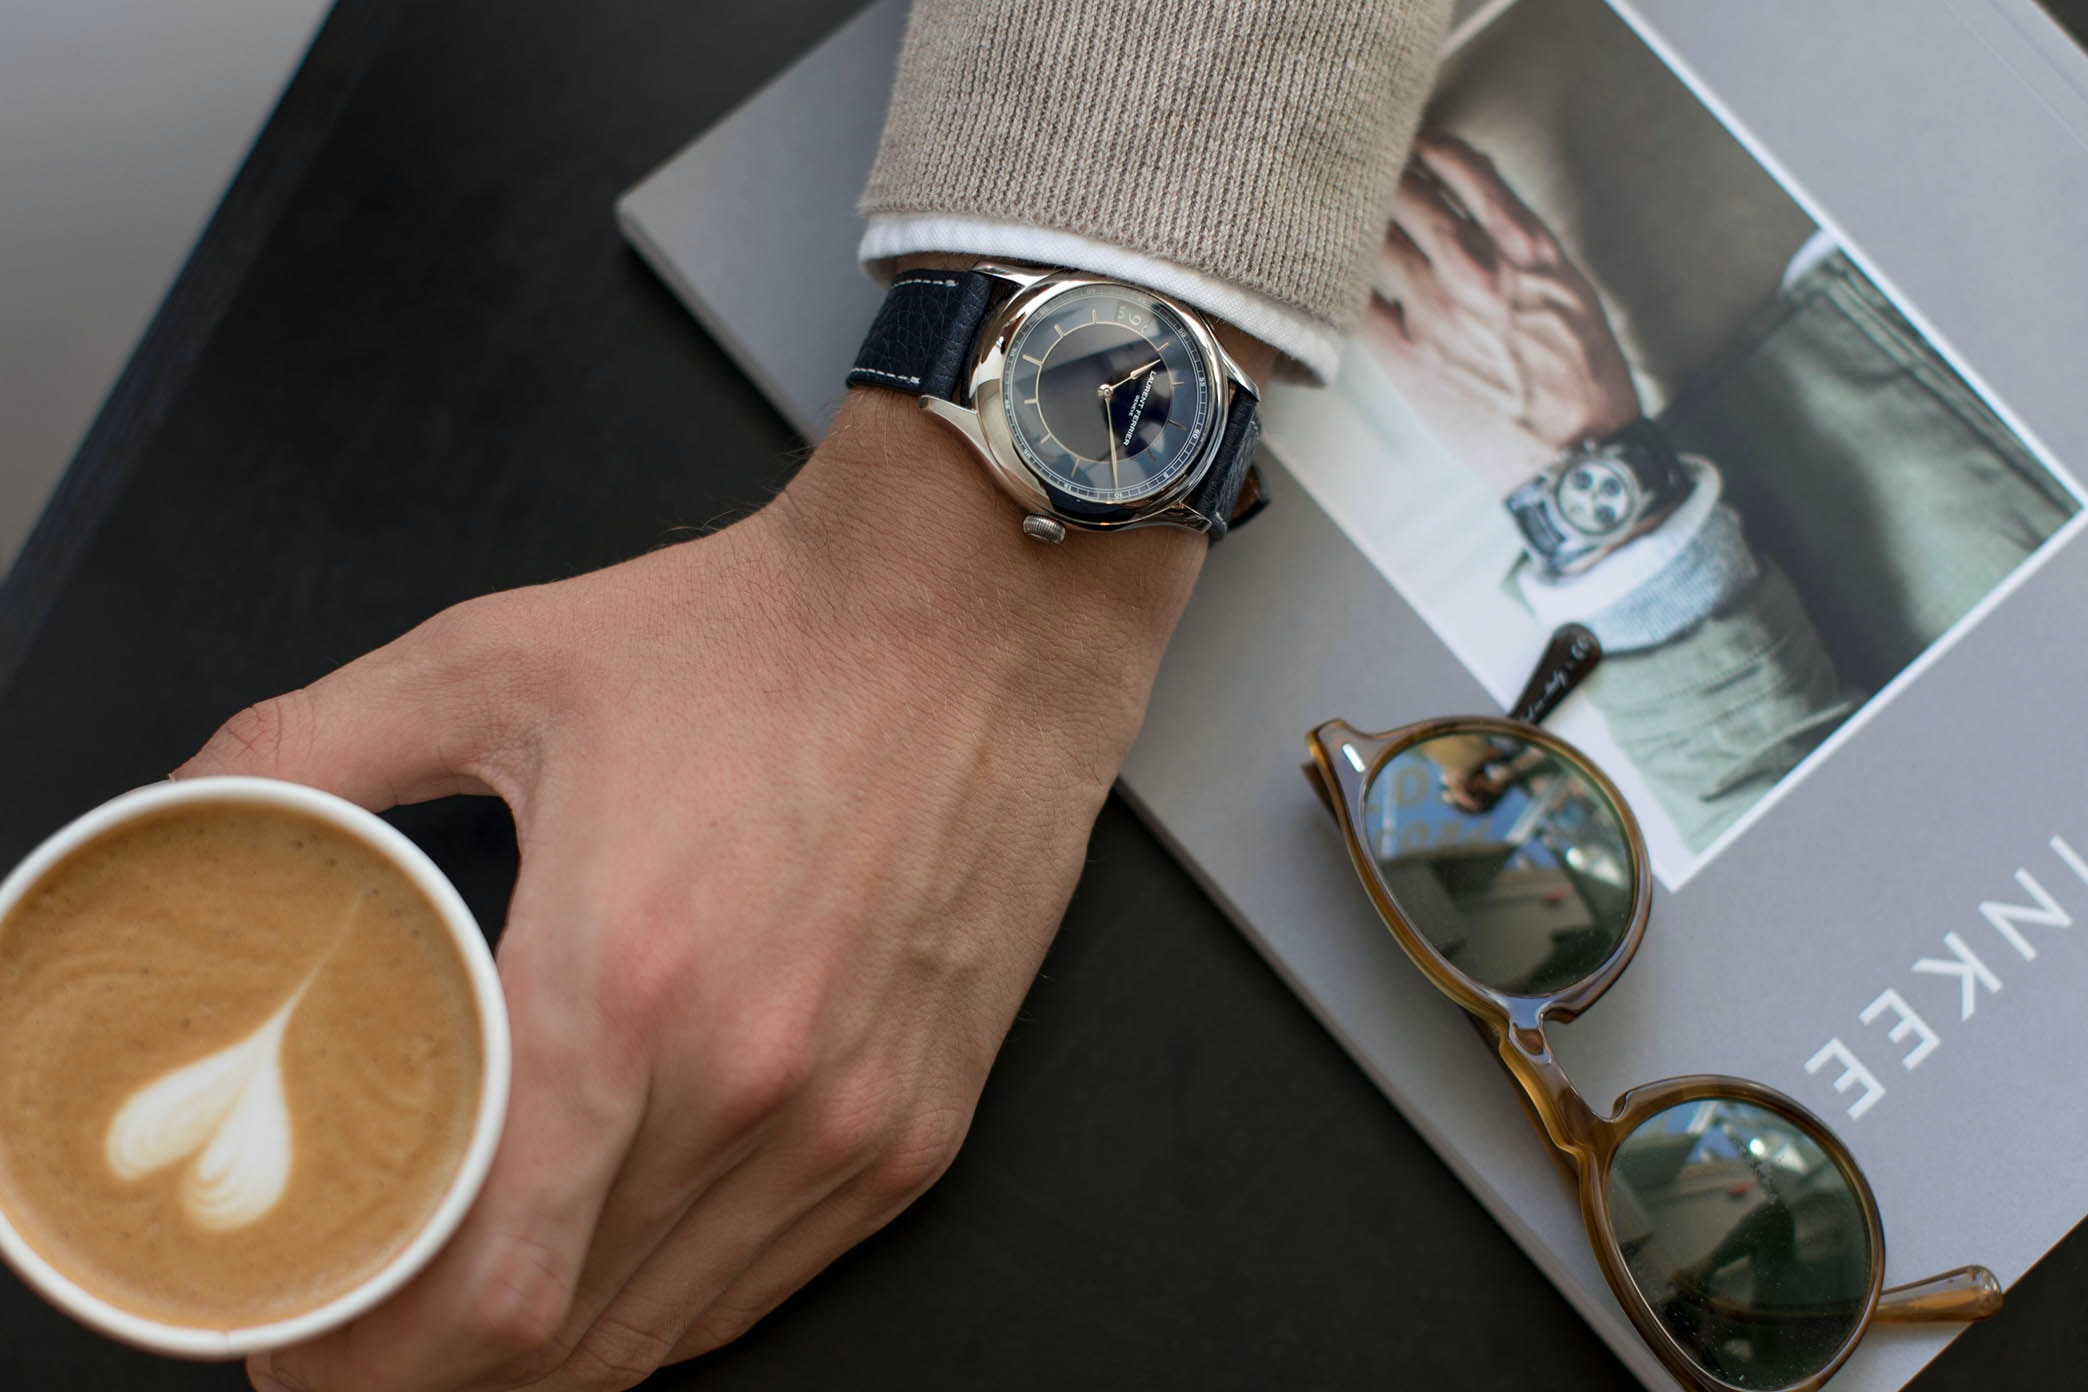 In The Shop: Introducing The Laurent Ferrier Traveller Limited Edition For HODINKEE hodinkee 057